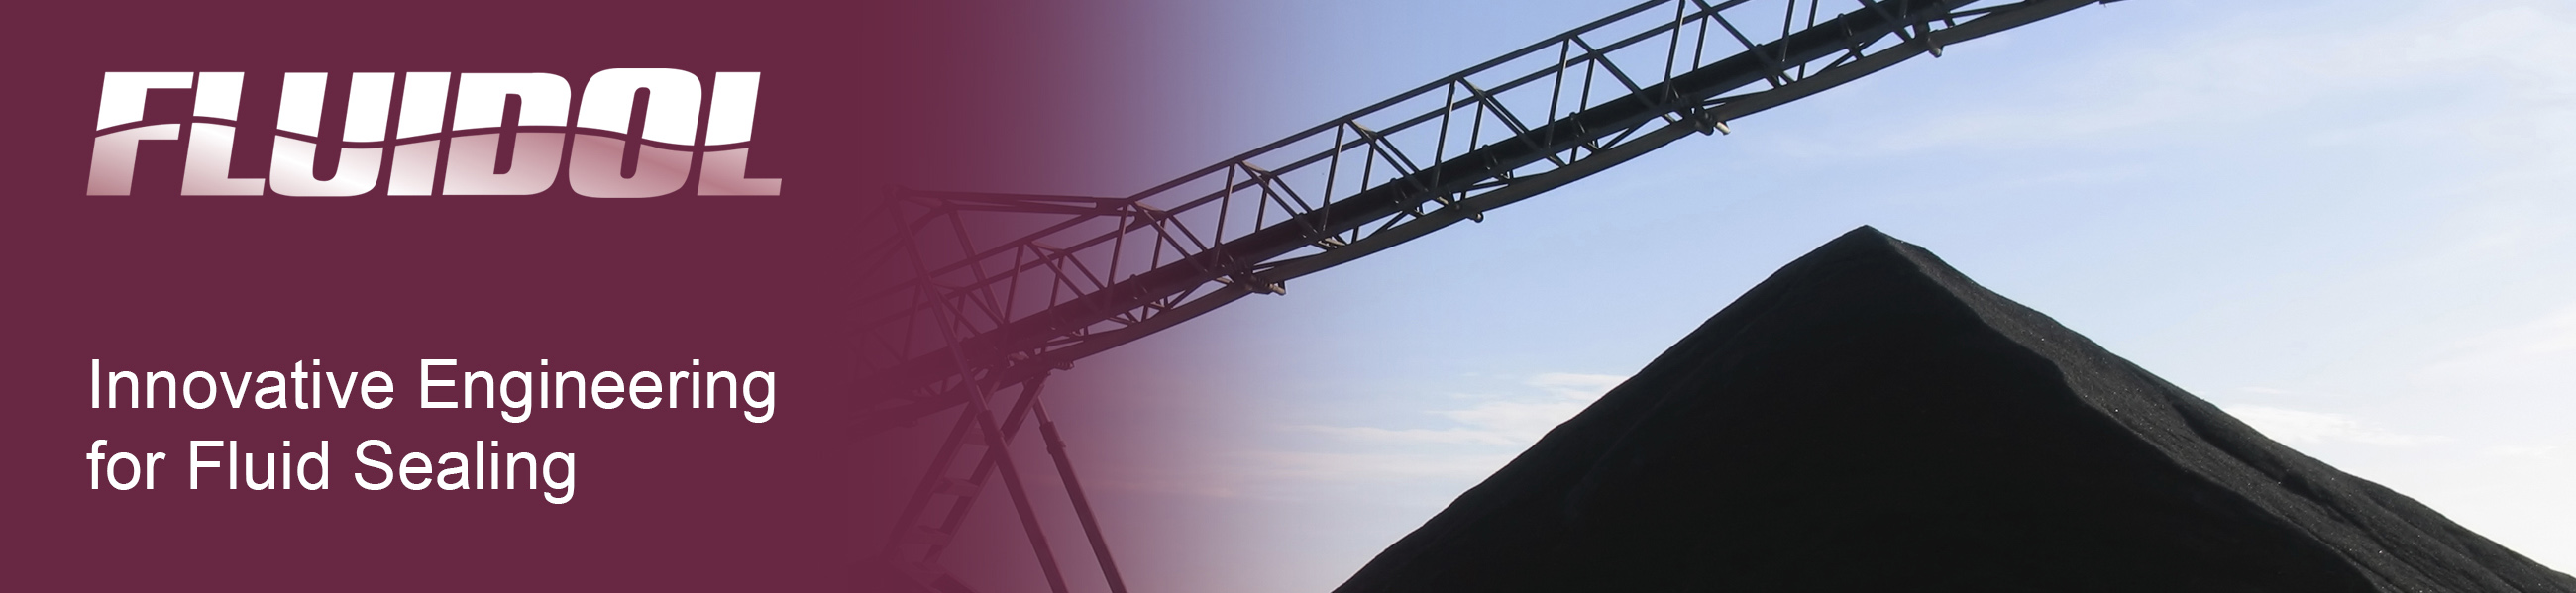 A large pile of coal shown with a conveyor belt.